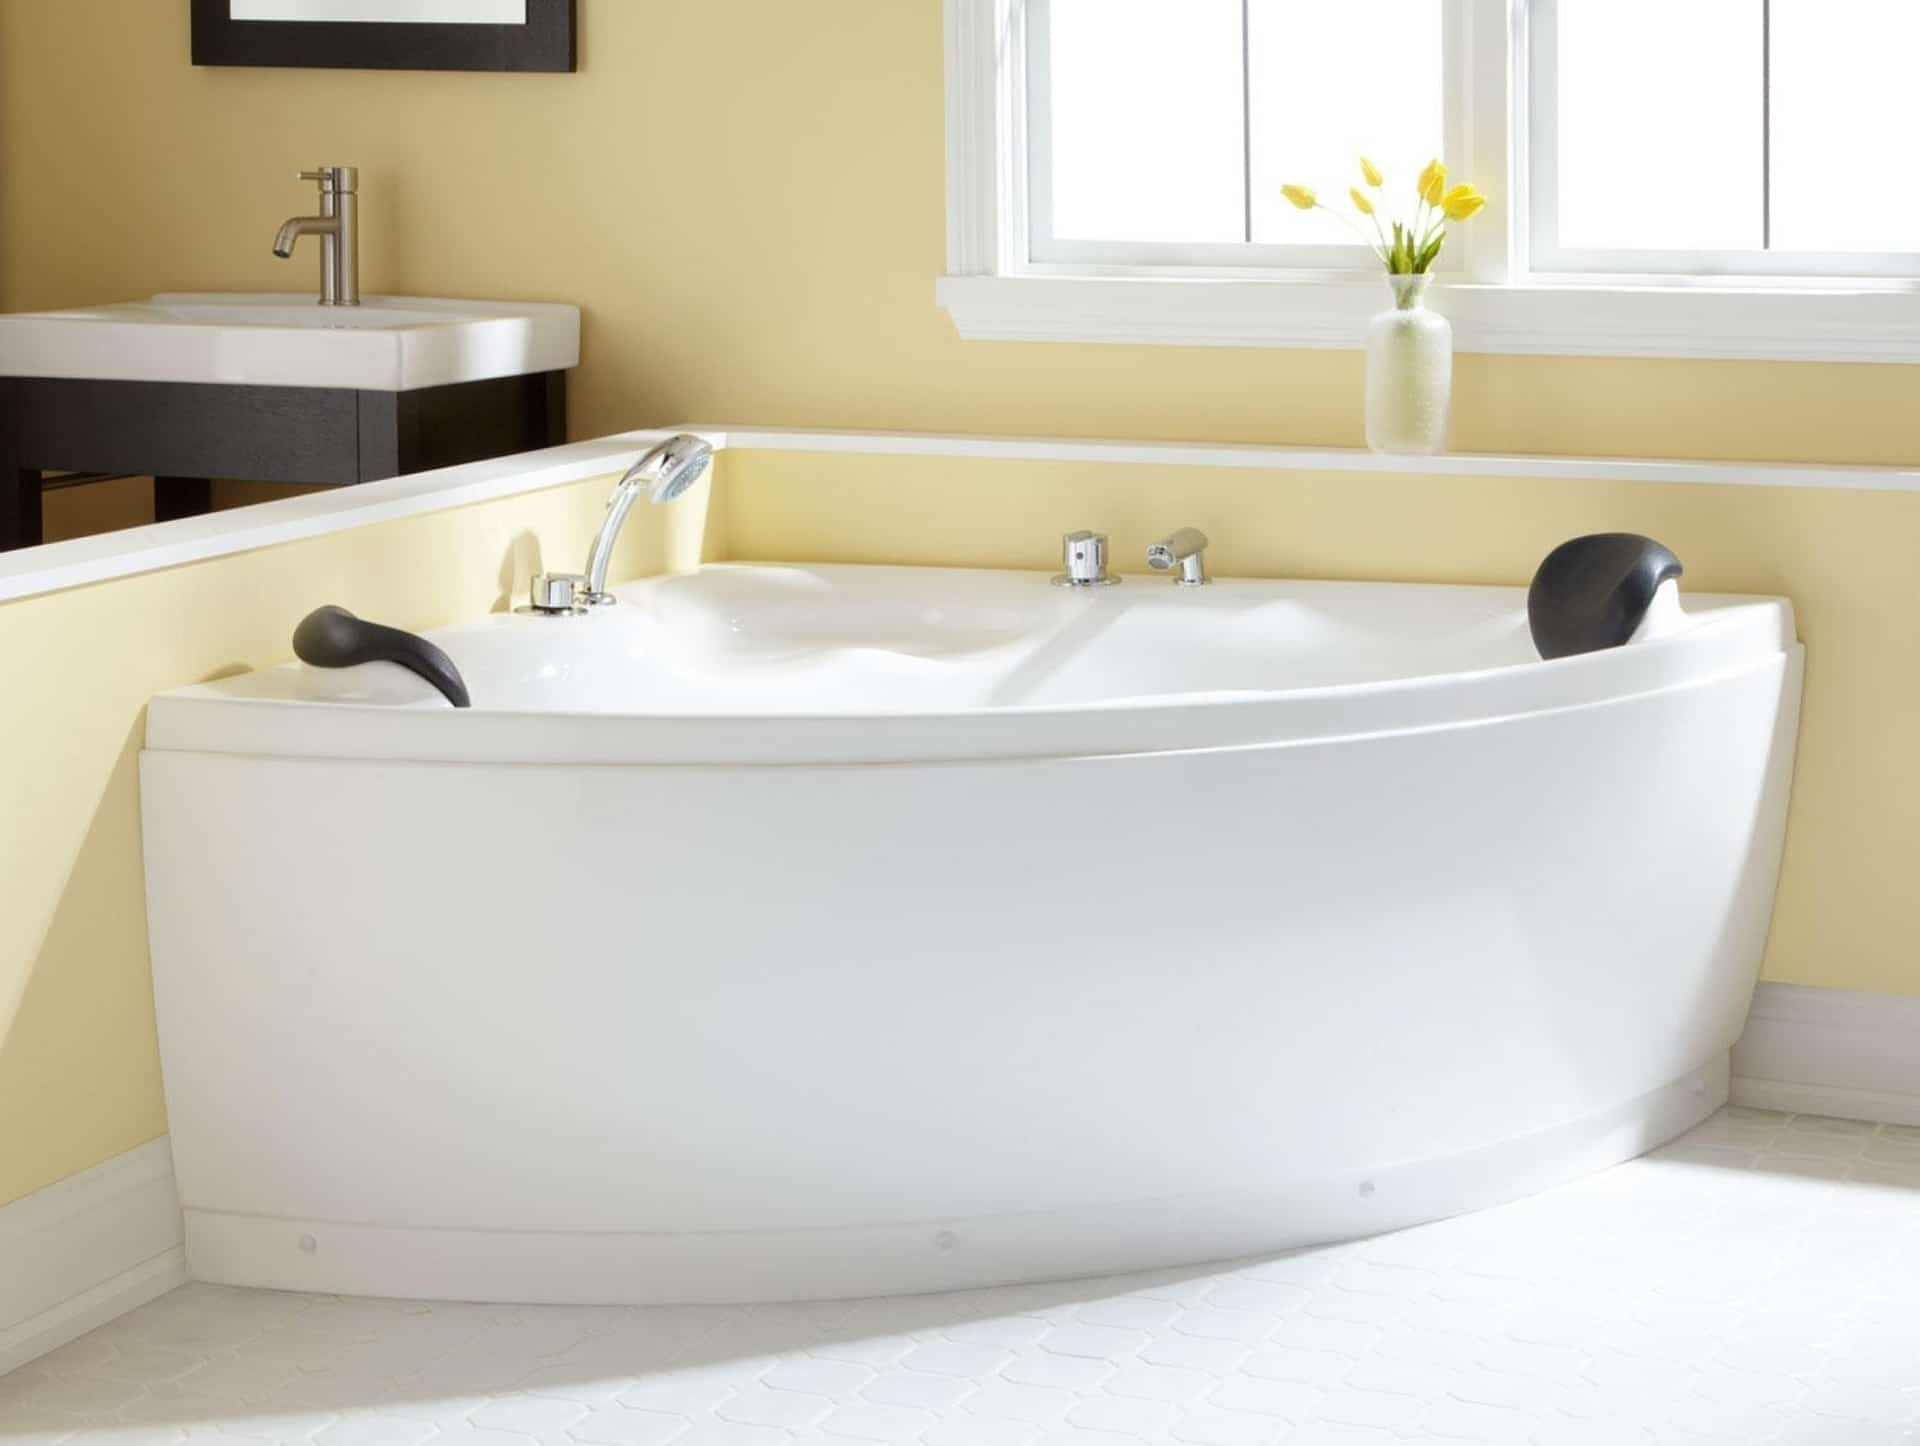 Picture of: Corner Freestanding Tub Ideas On Foter